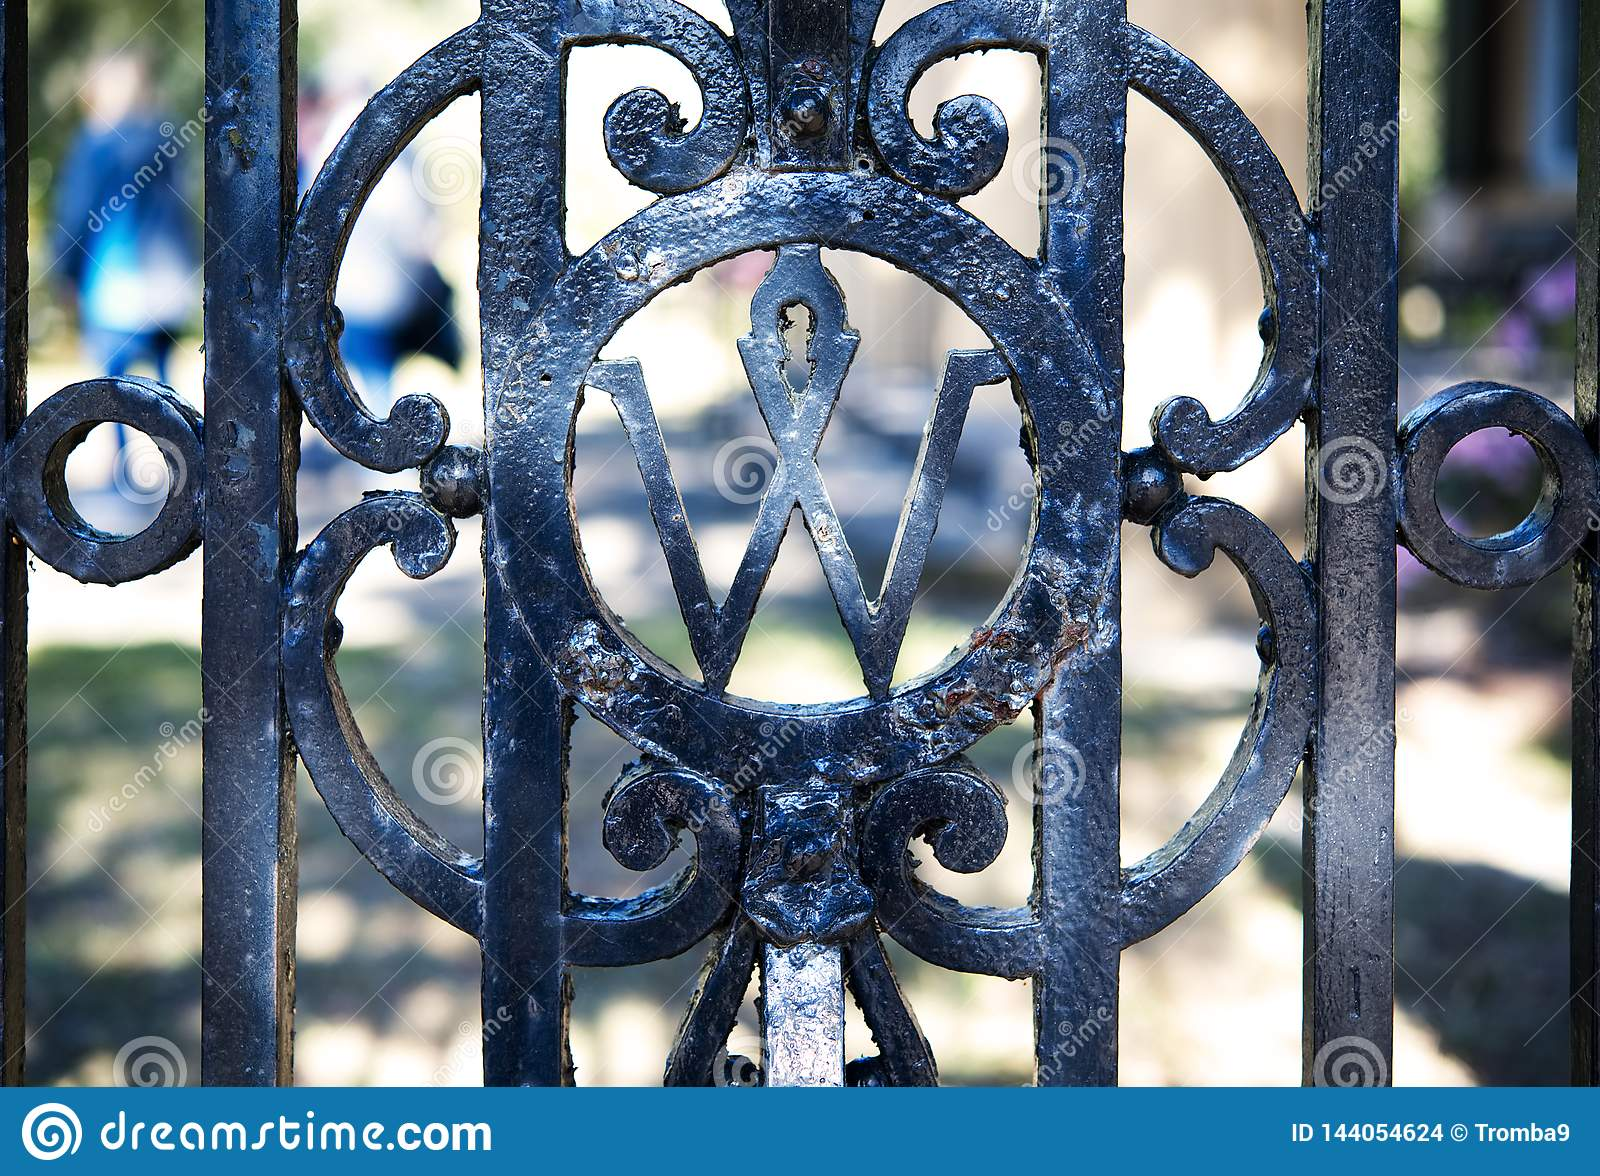 An Old Wrought Iron Gate With A Design Stock Photo Image Of Weathered Design 144054624,Business Graphic Facebook Cover Design